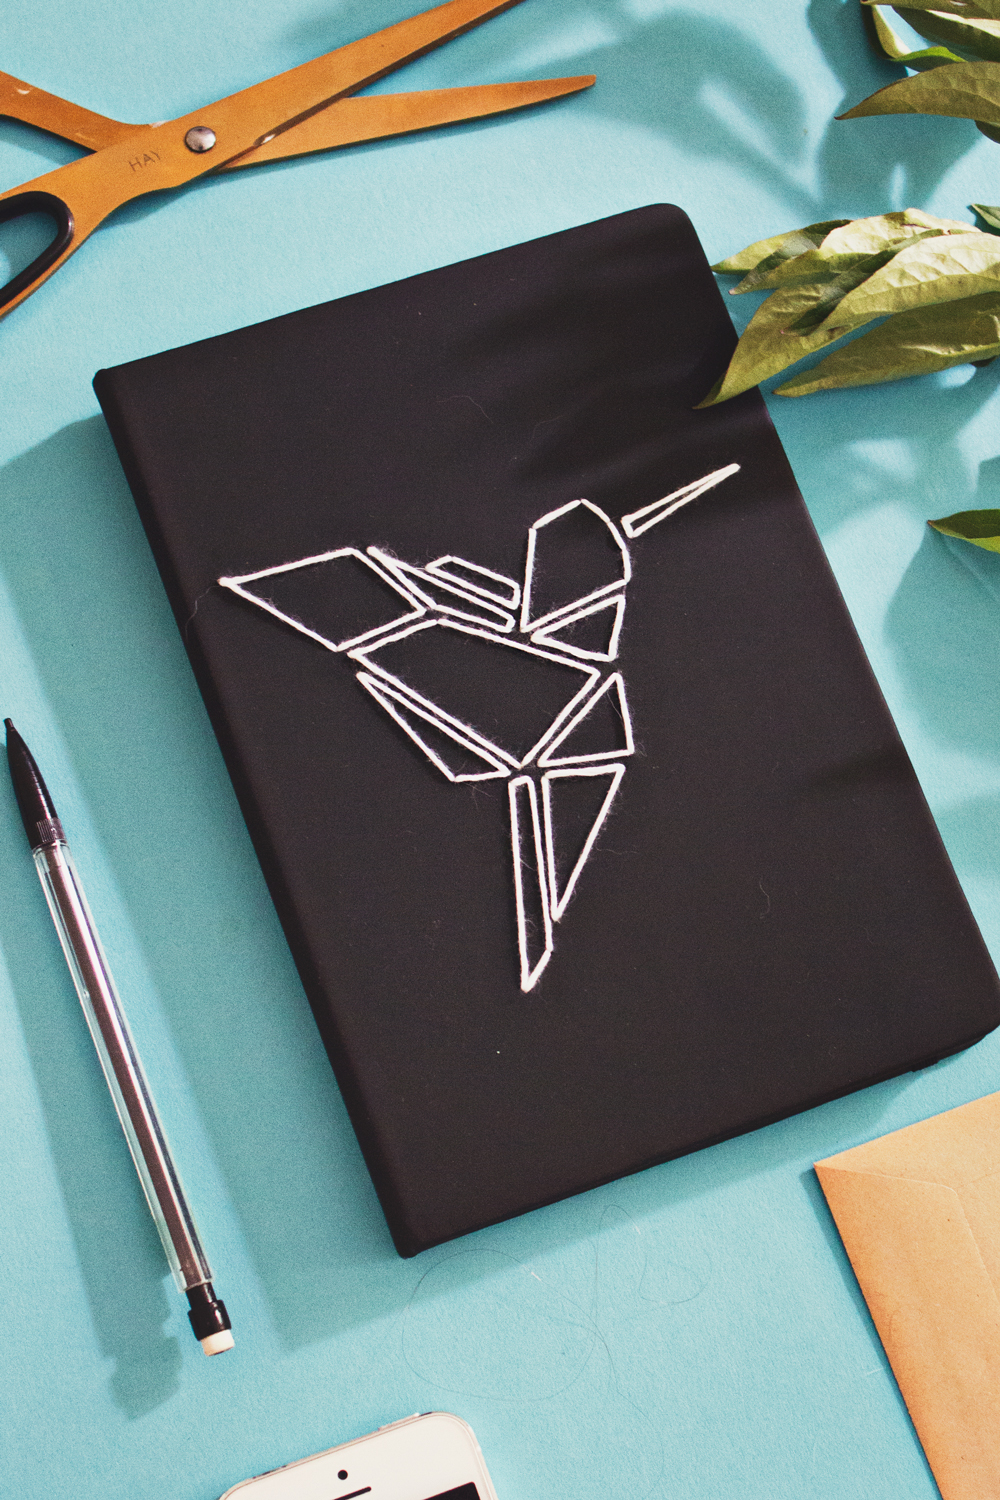 Diy Music Book Cover : Diy origami embroidered book cover